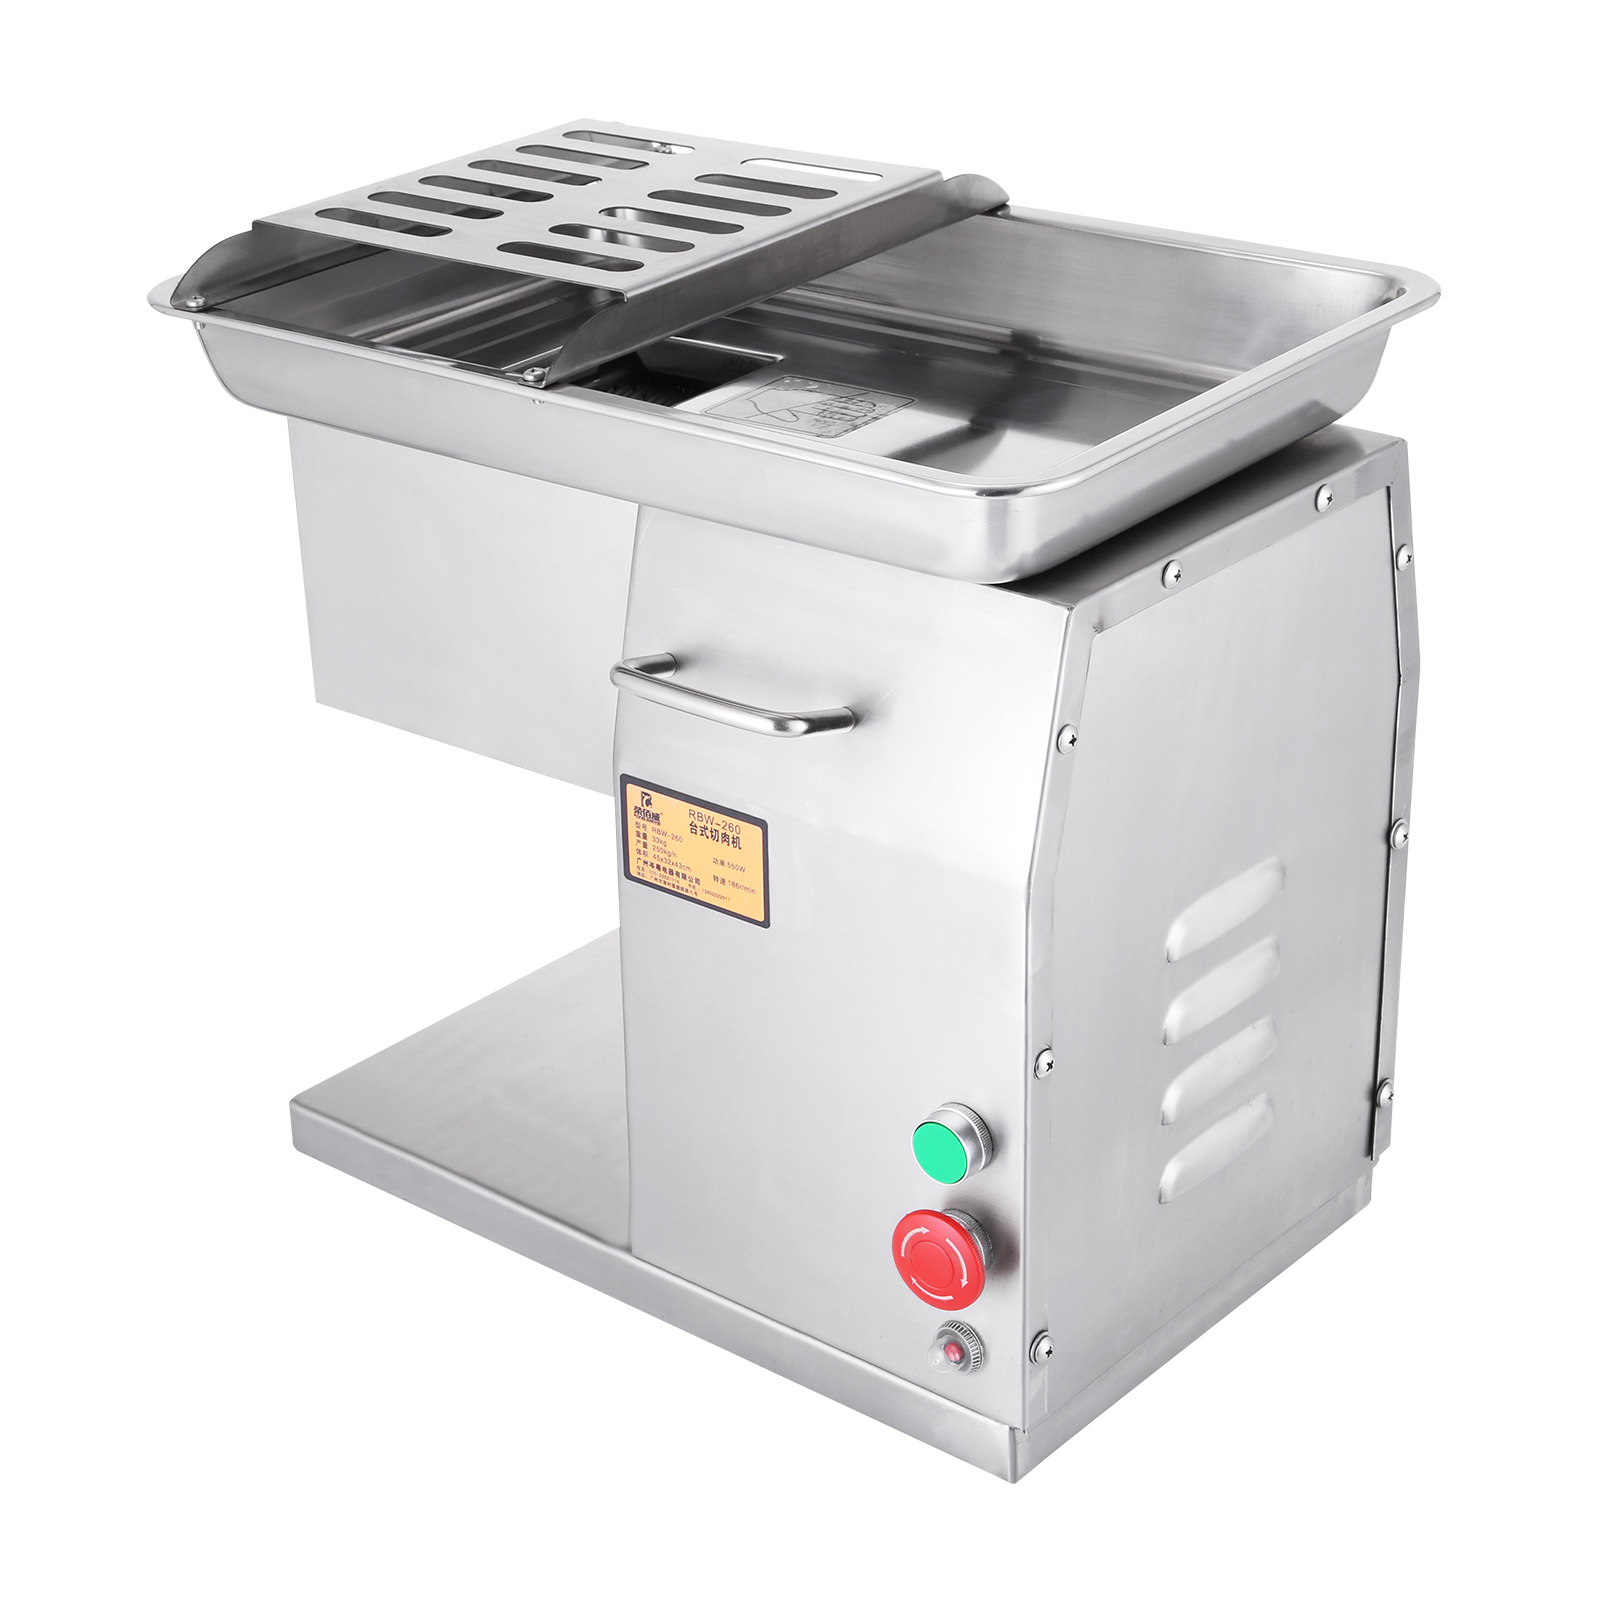 BestEquip Commercial Meat Slicer 551LB/H 550W Stainless Steel Fresh Meat Cutter Commercial Grade Restaurant Meat Processing Machine Electric Slicer 3mm Cutting Blade